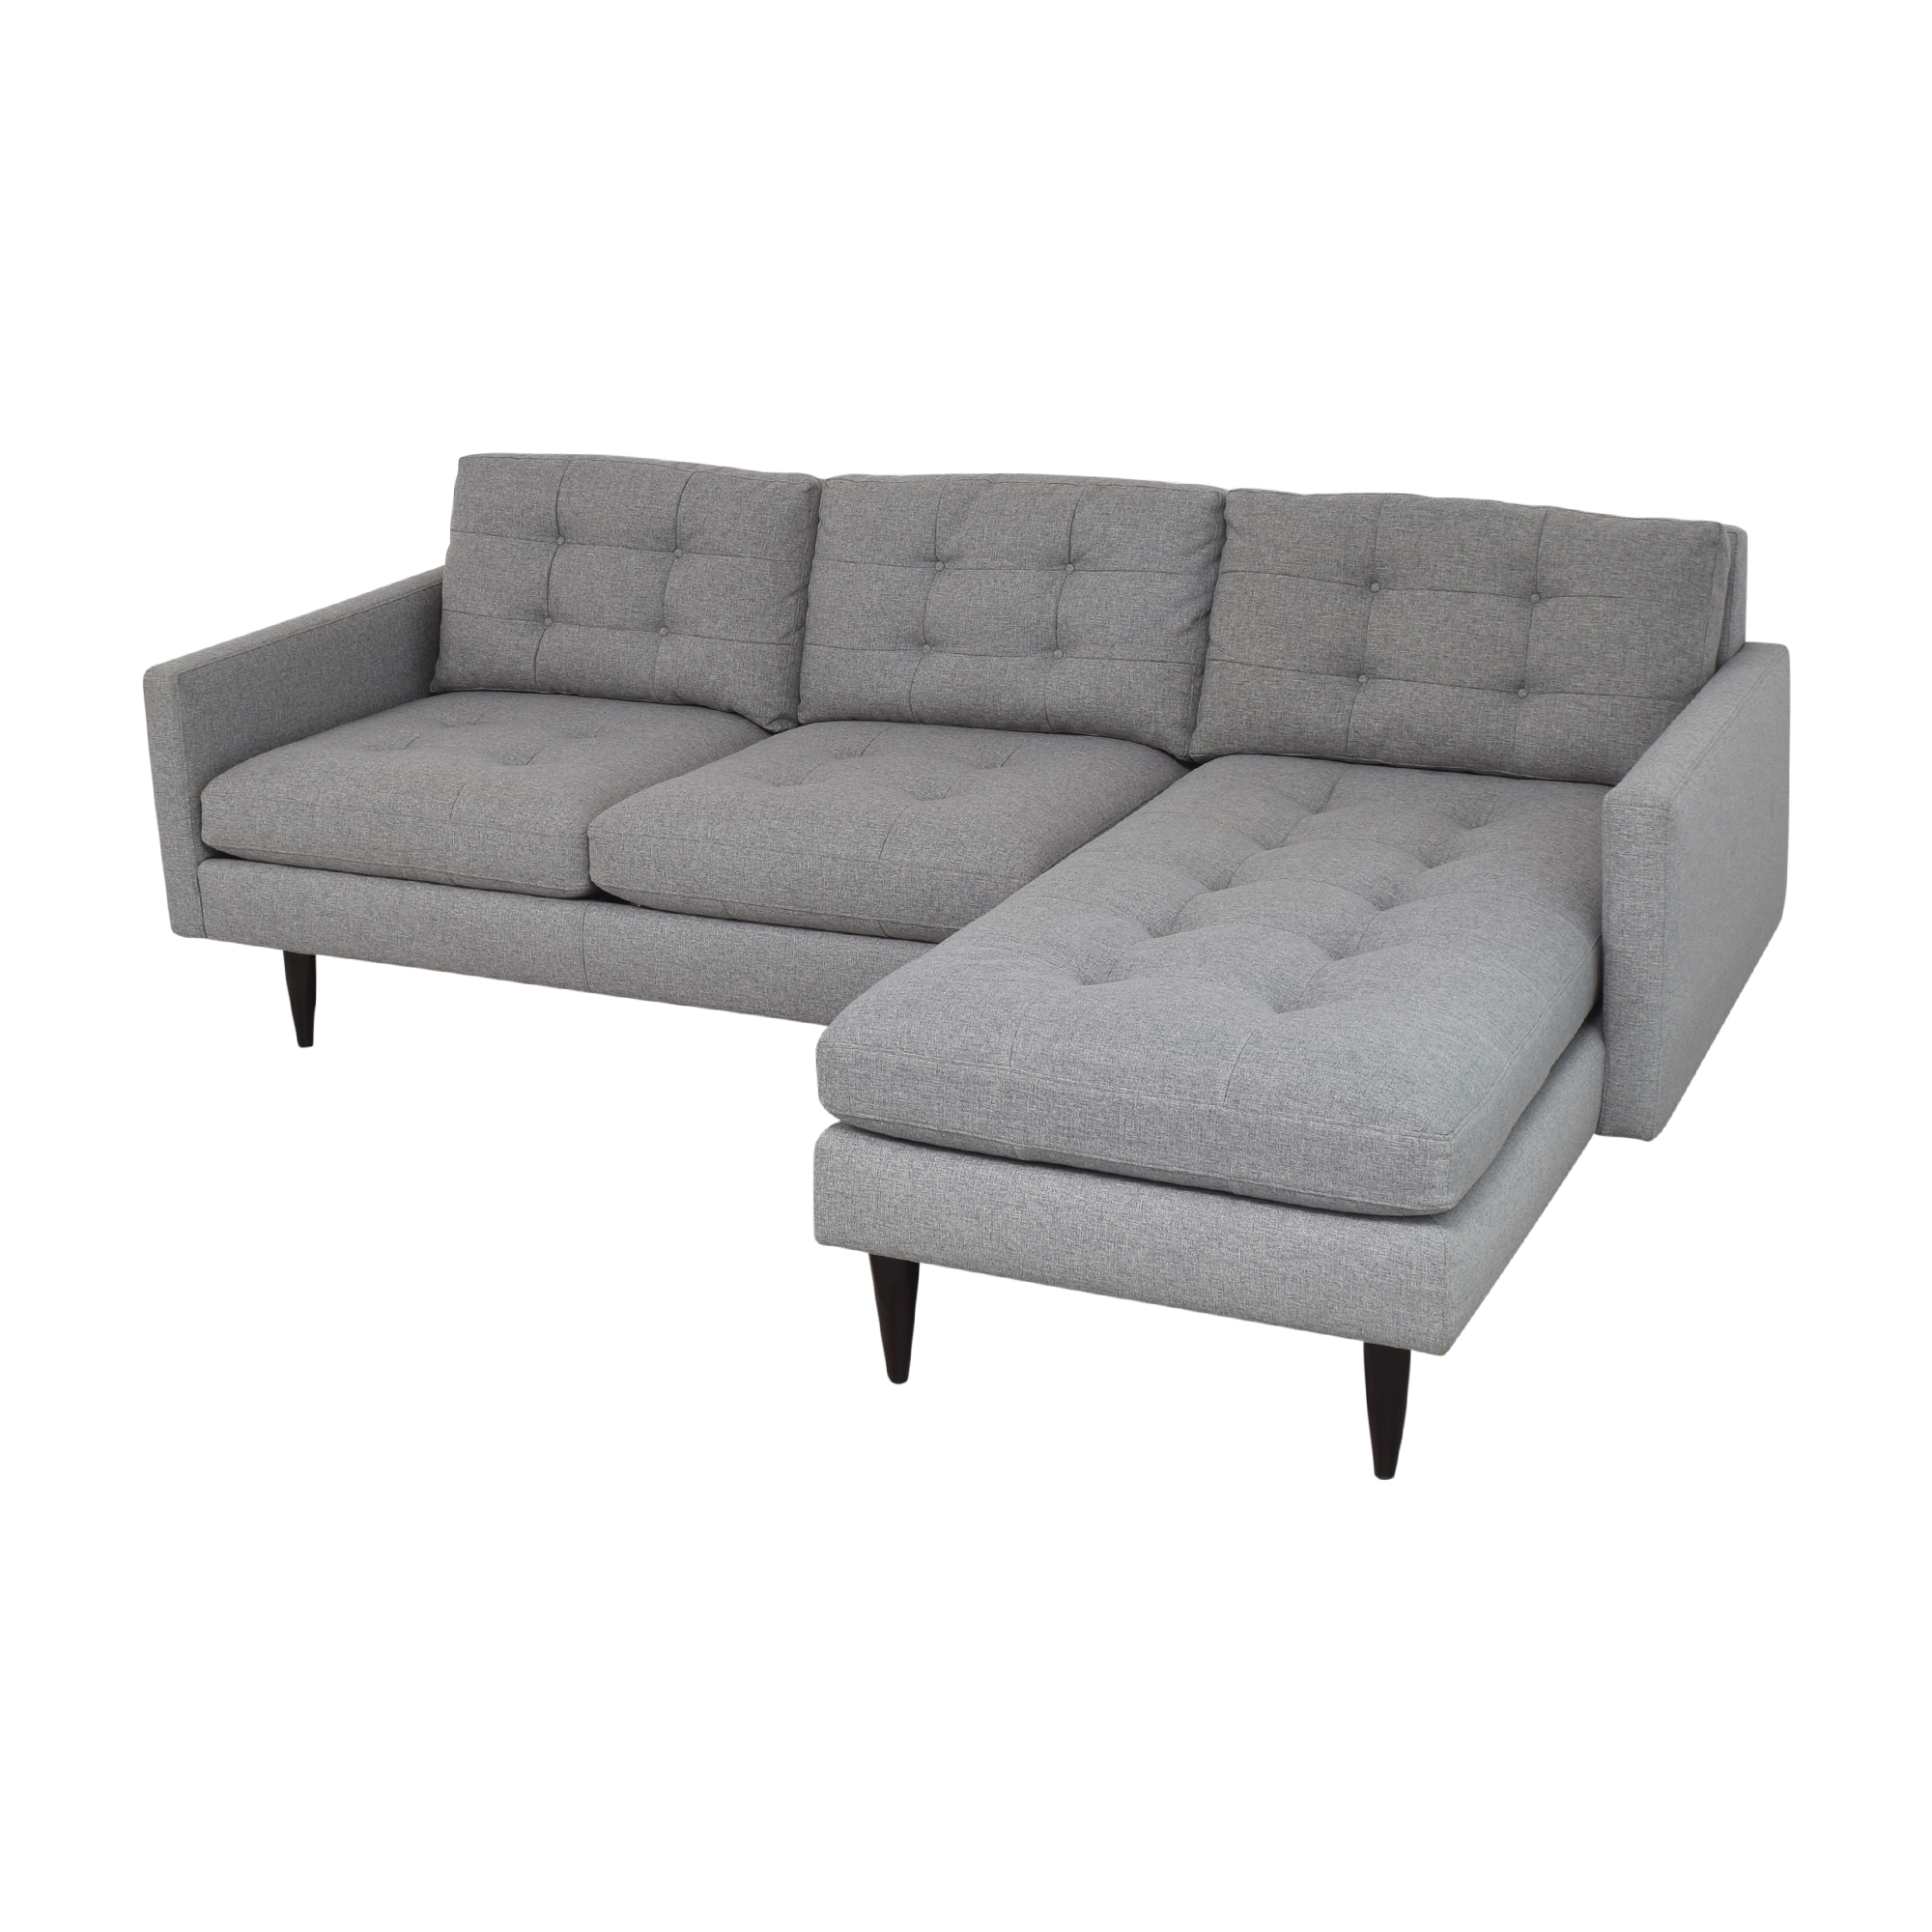 Crate & Barrel Crate & Barrel Petrie Two Piece Chaise Midcentury Sectional Sofa dimensions